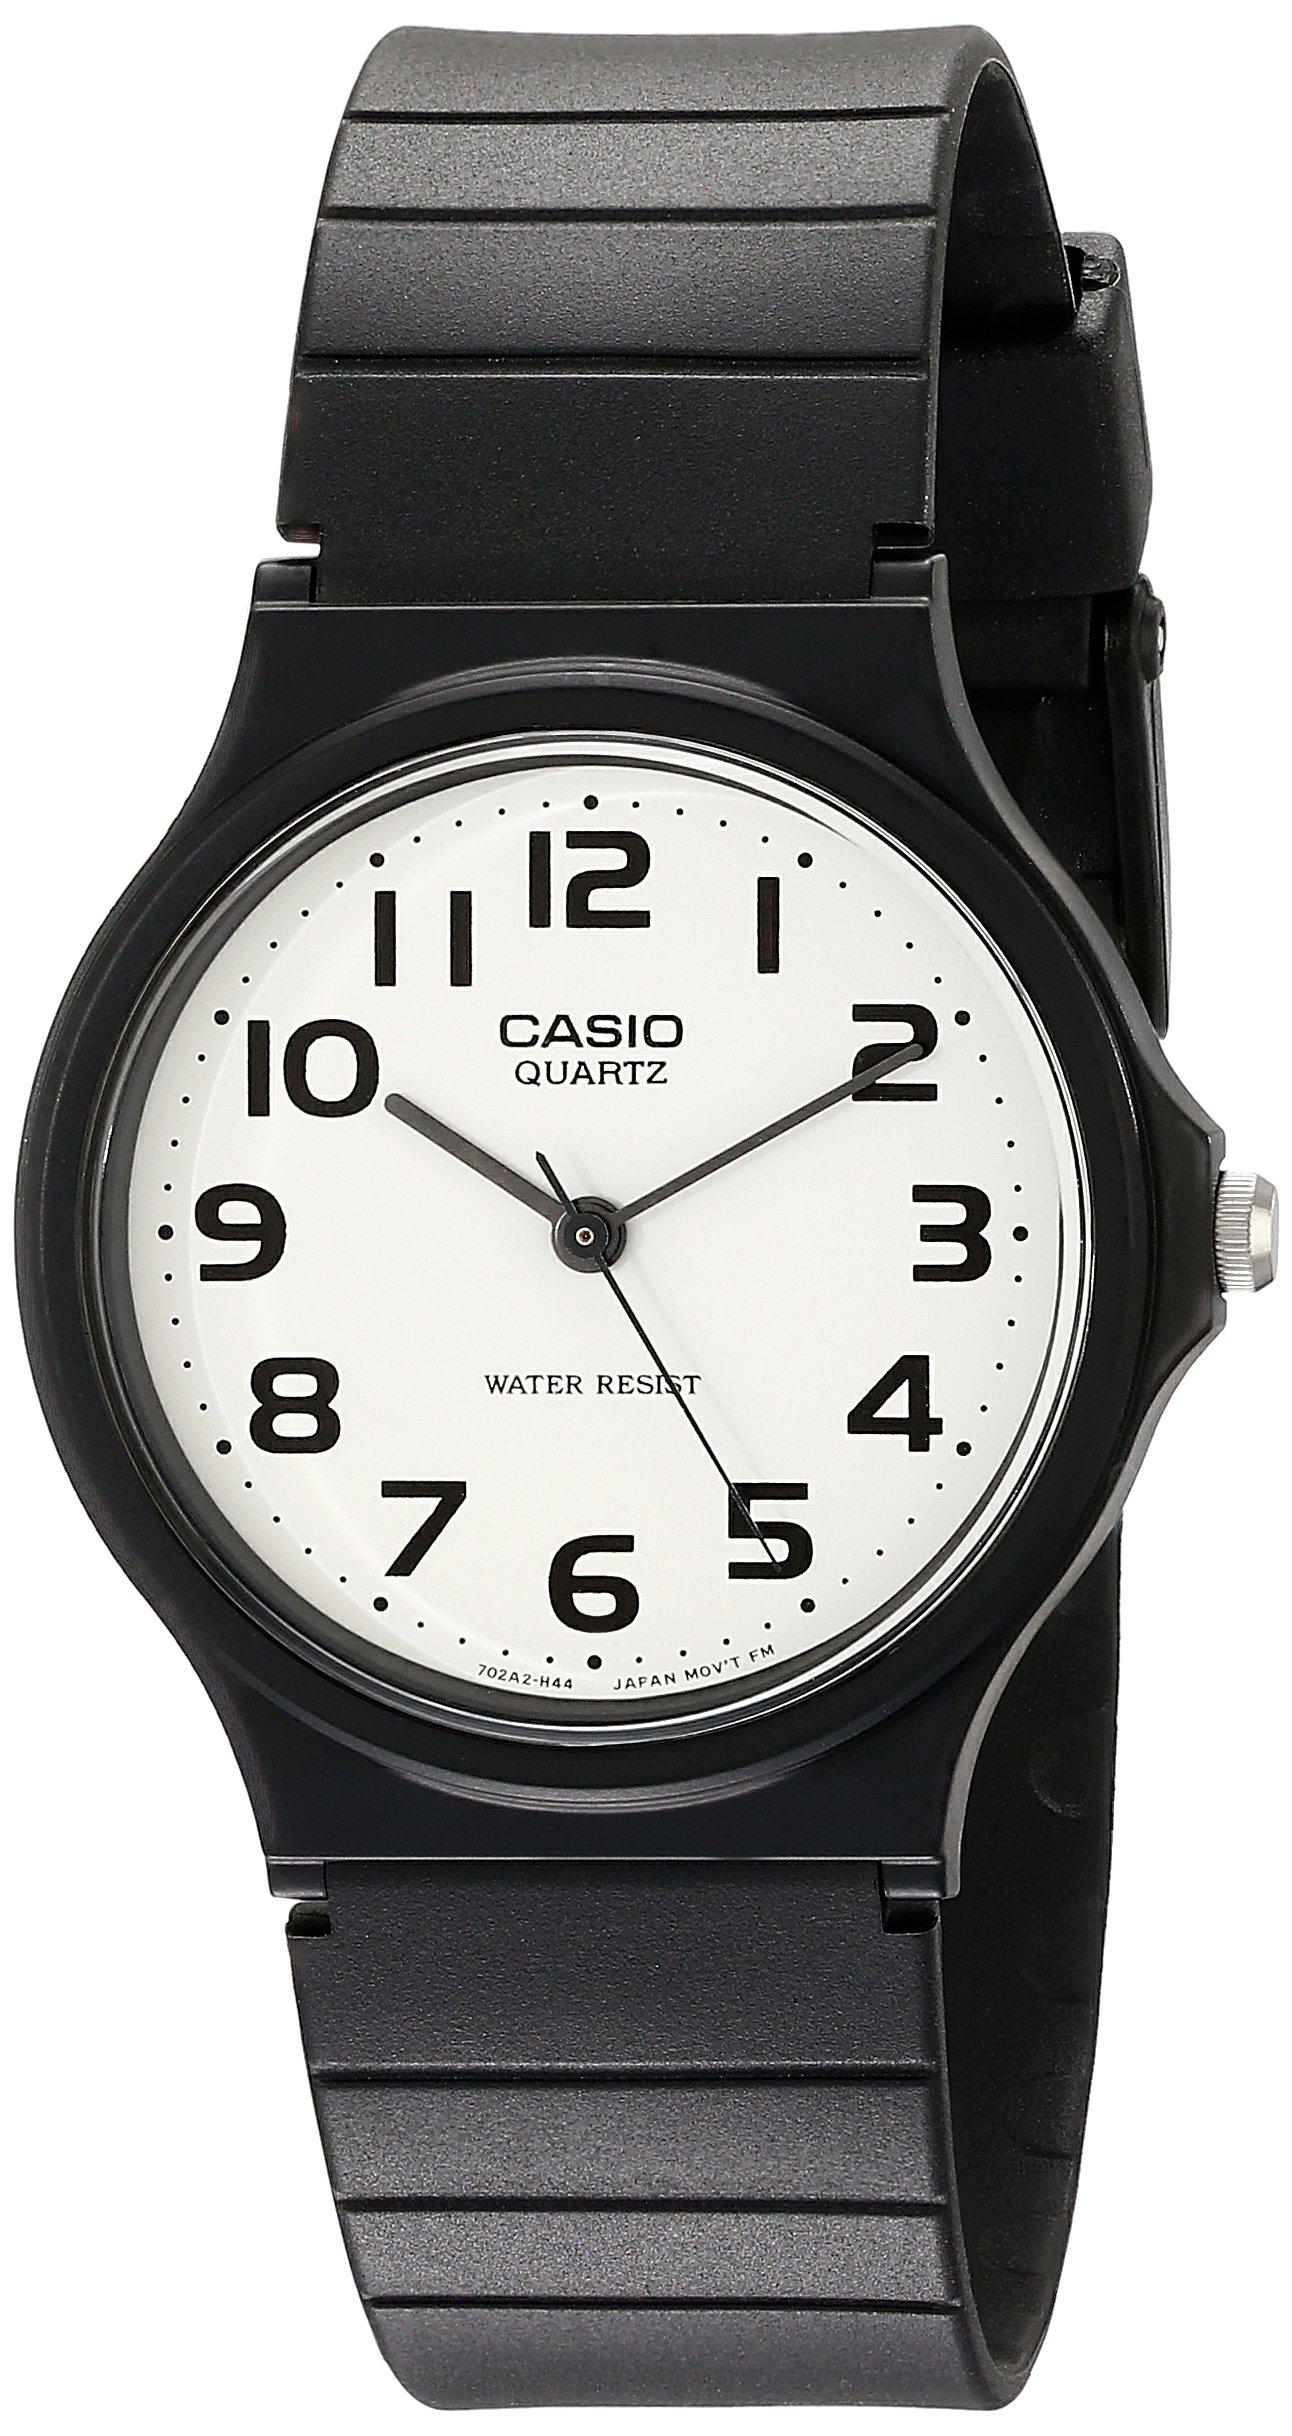 huge selection of 7cdc9 74410 Cheap Casio 1330 Mq 24, find Casio 1330 Mq 24 deals on line ...